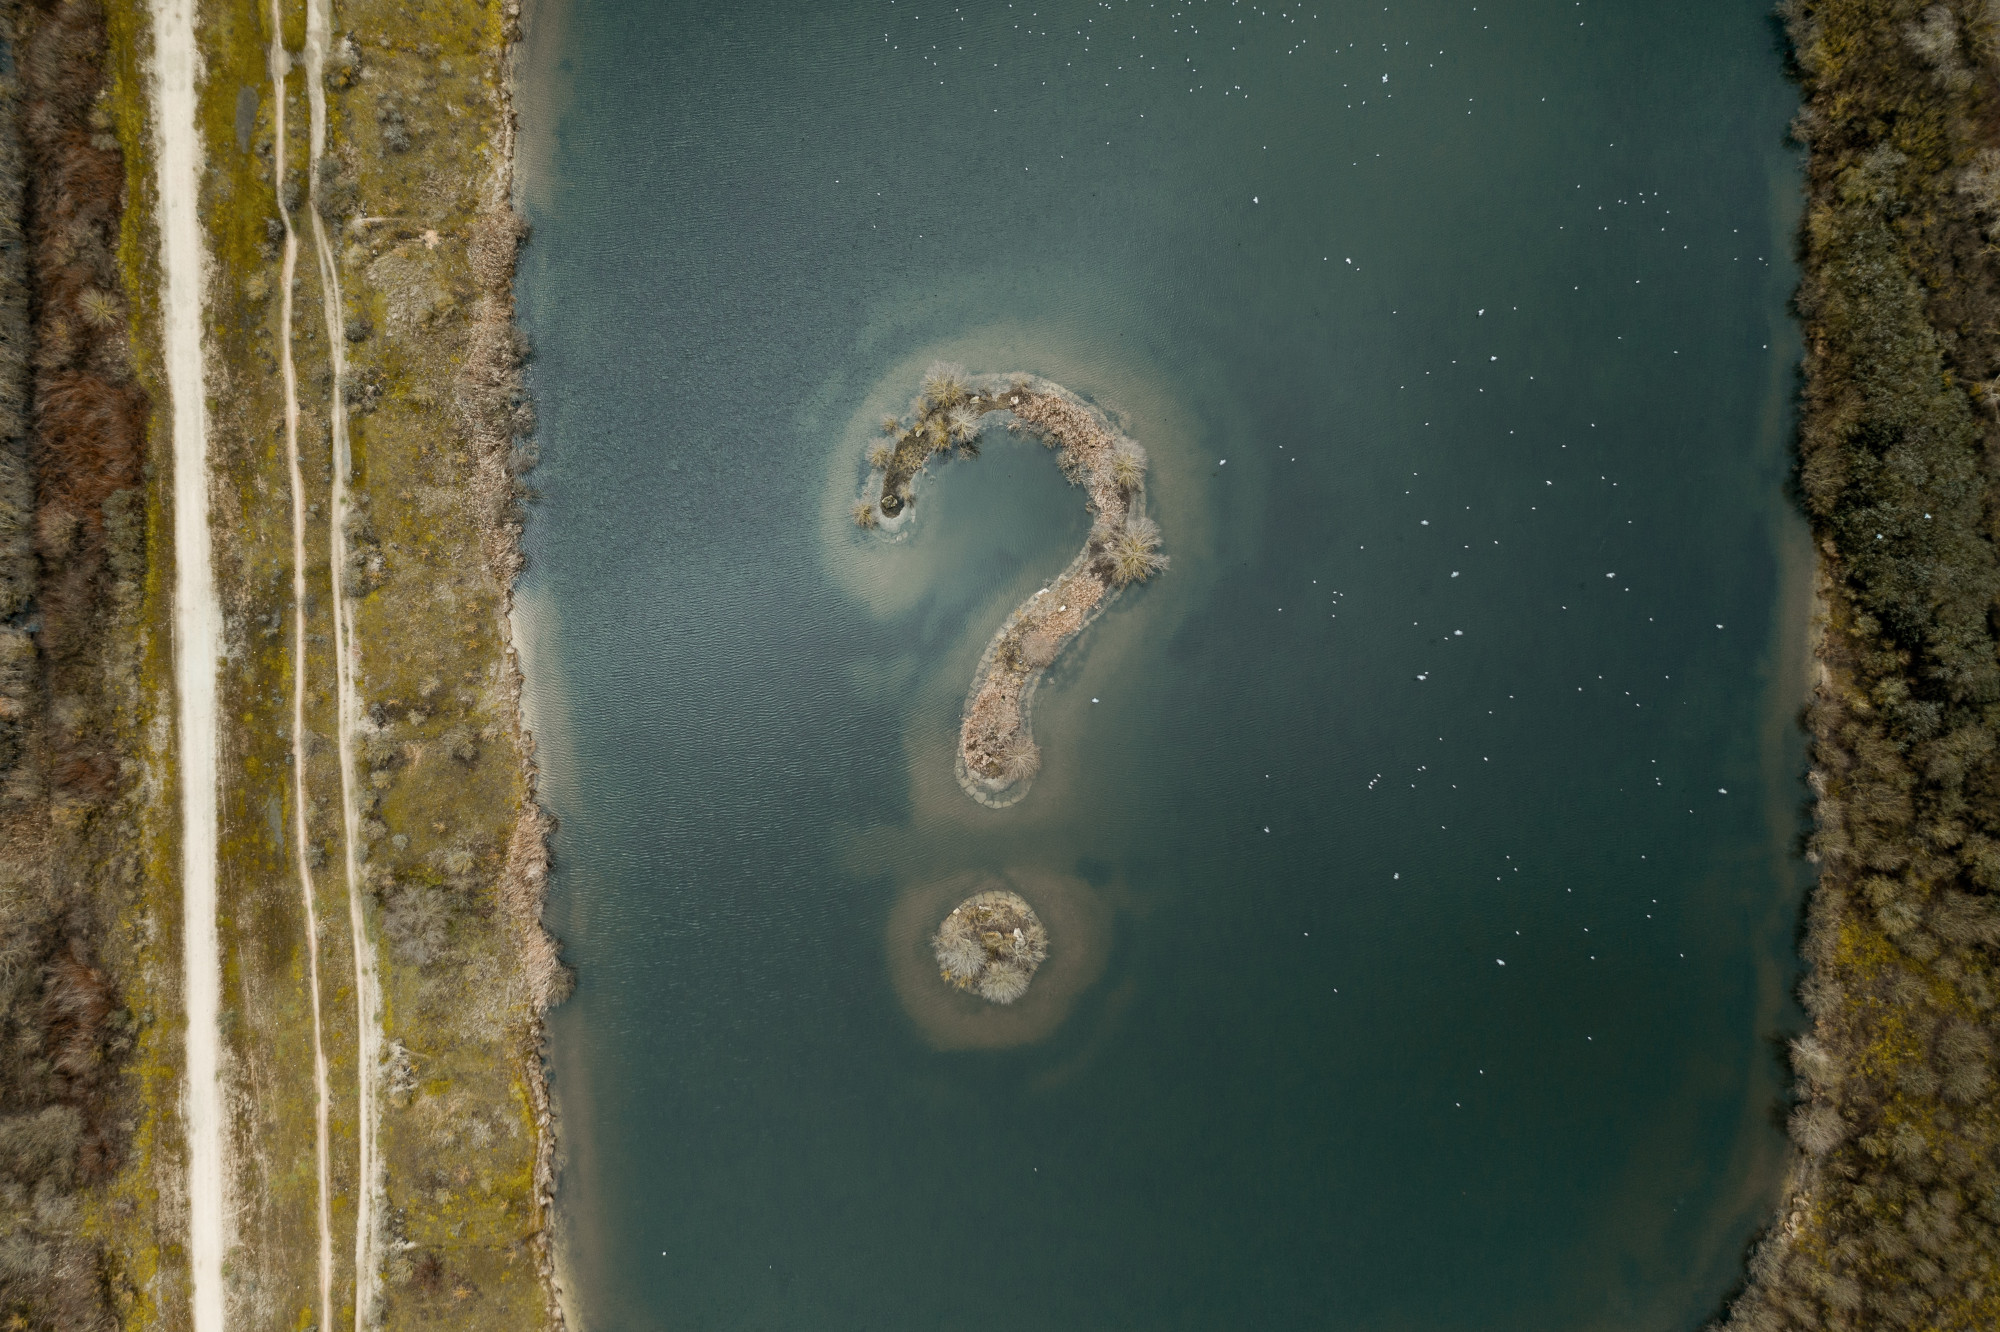 Picture of an island in the shape of a question mark